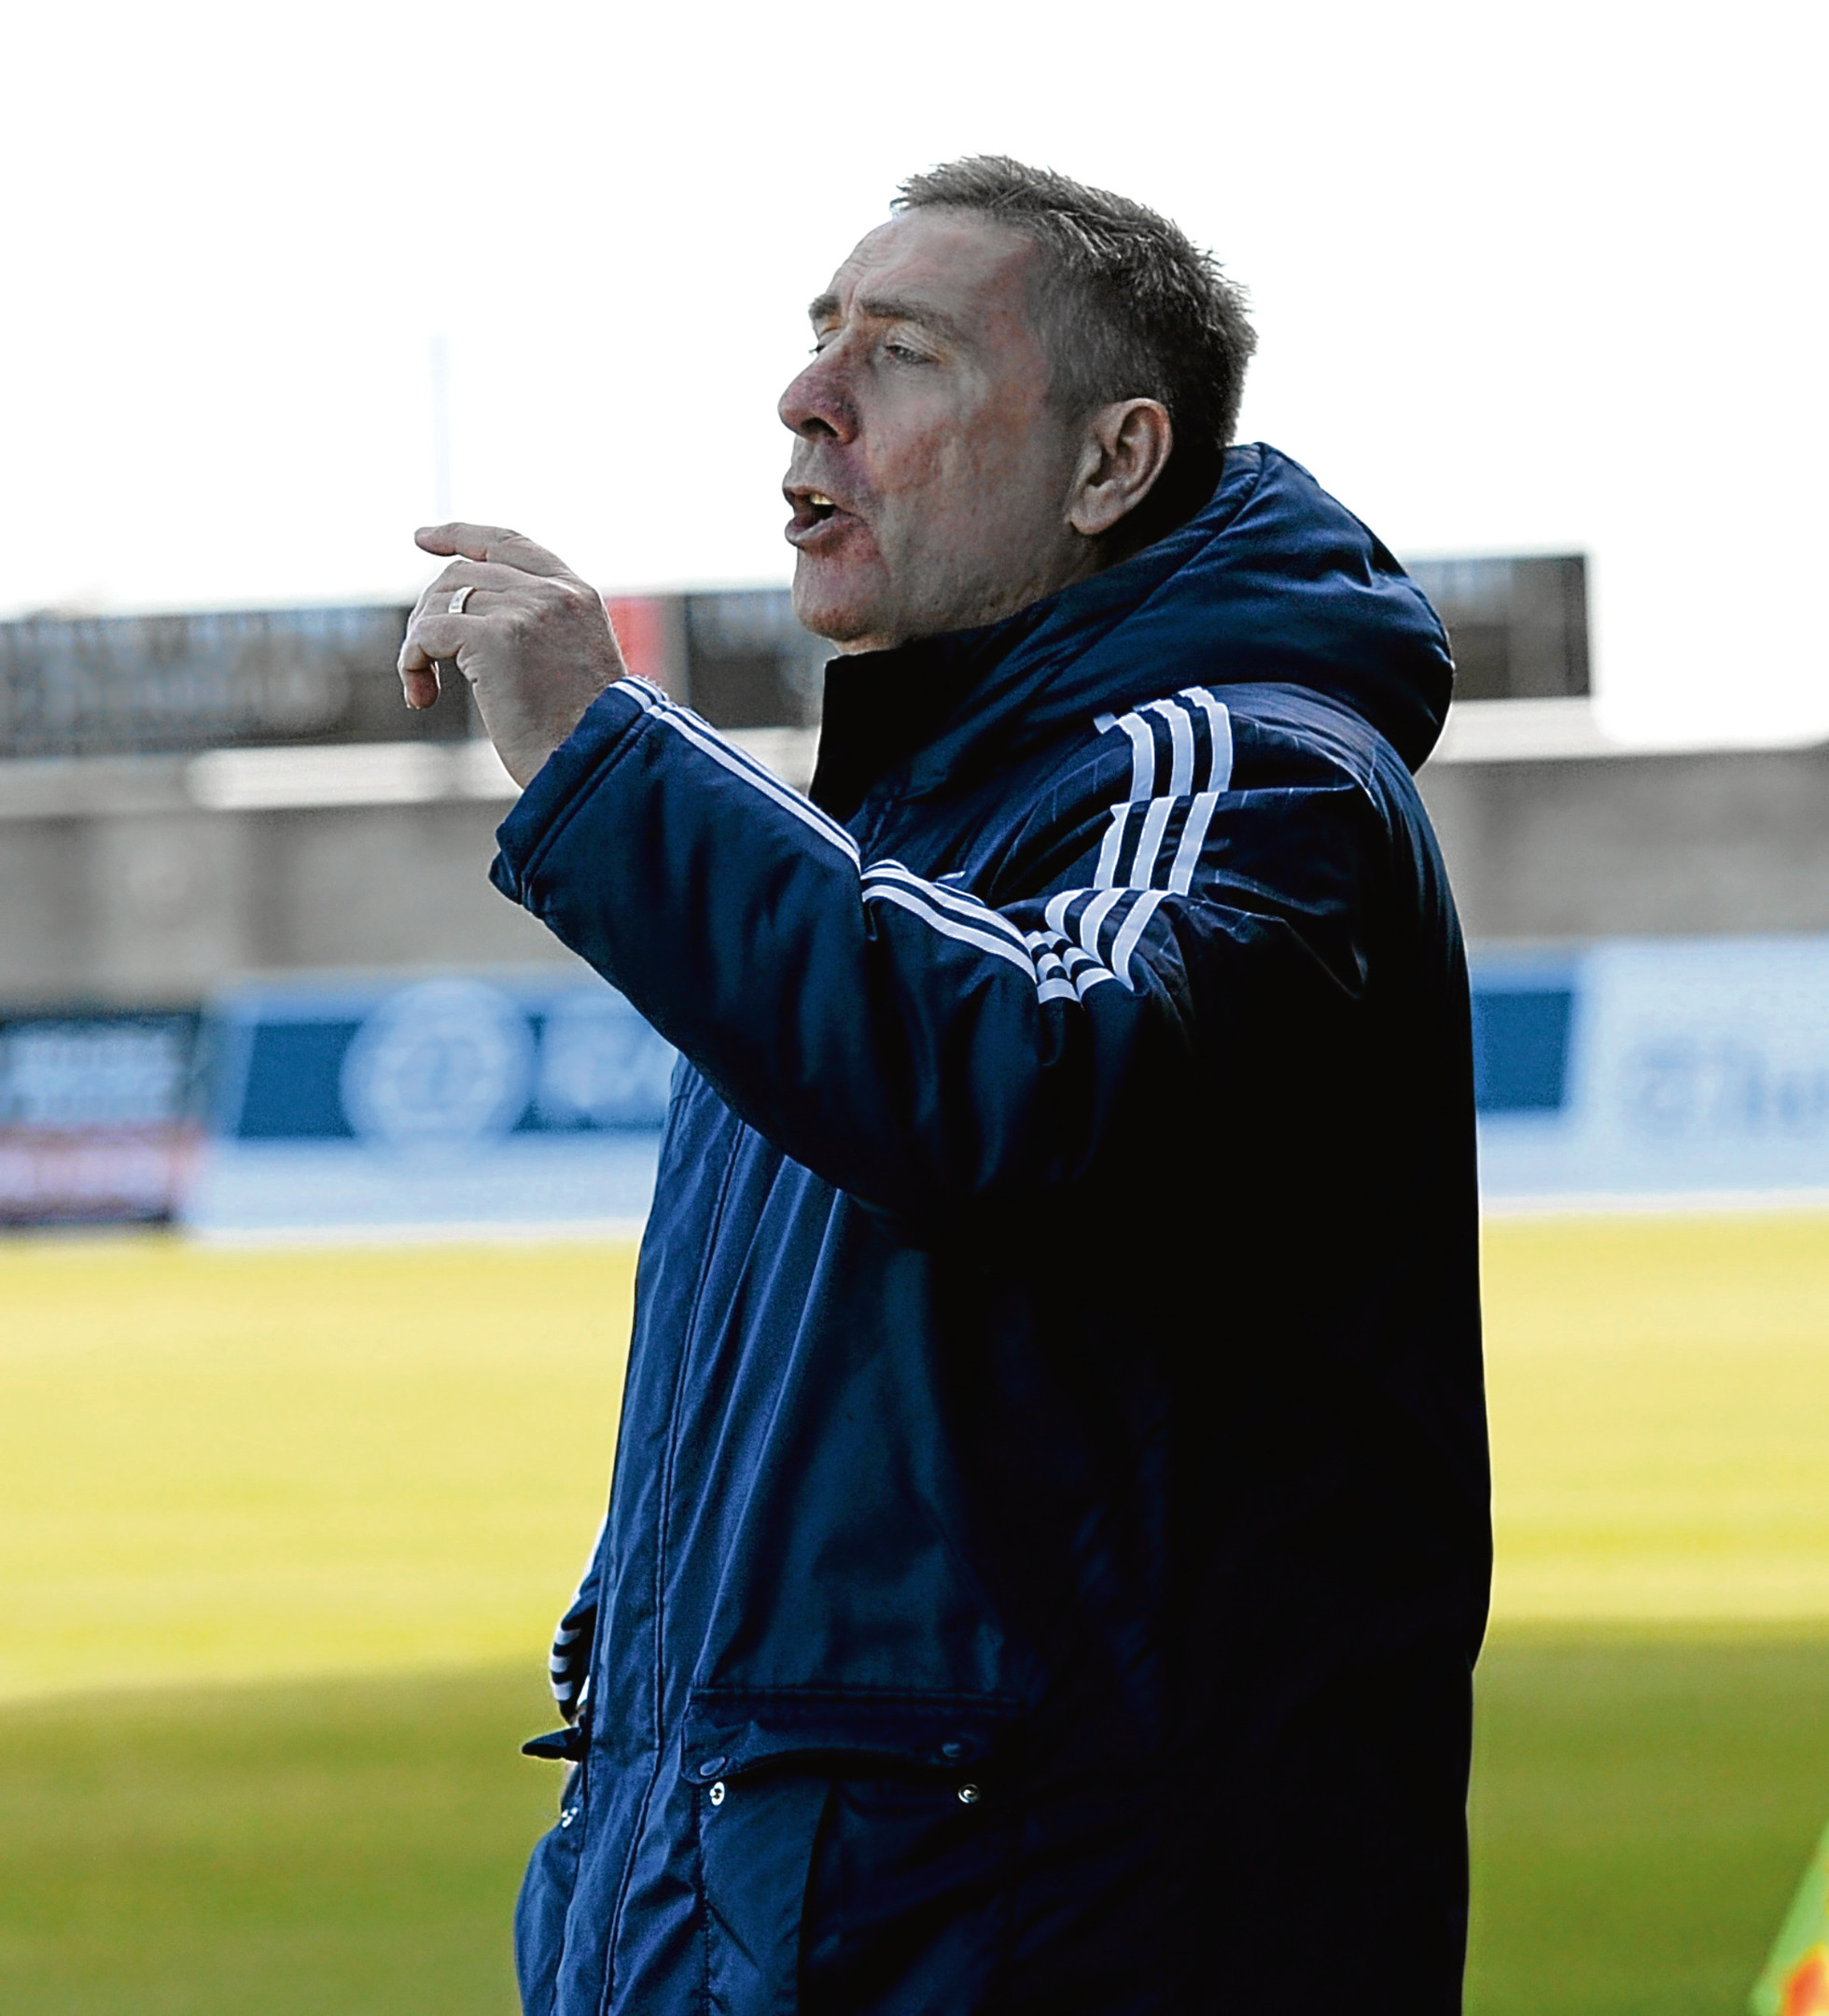 Peterhead Manager Jim McInally. Picture by Kath Flannery